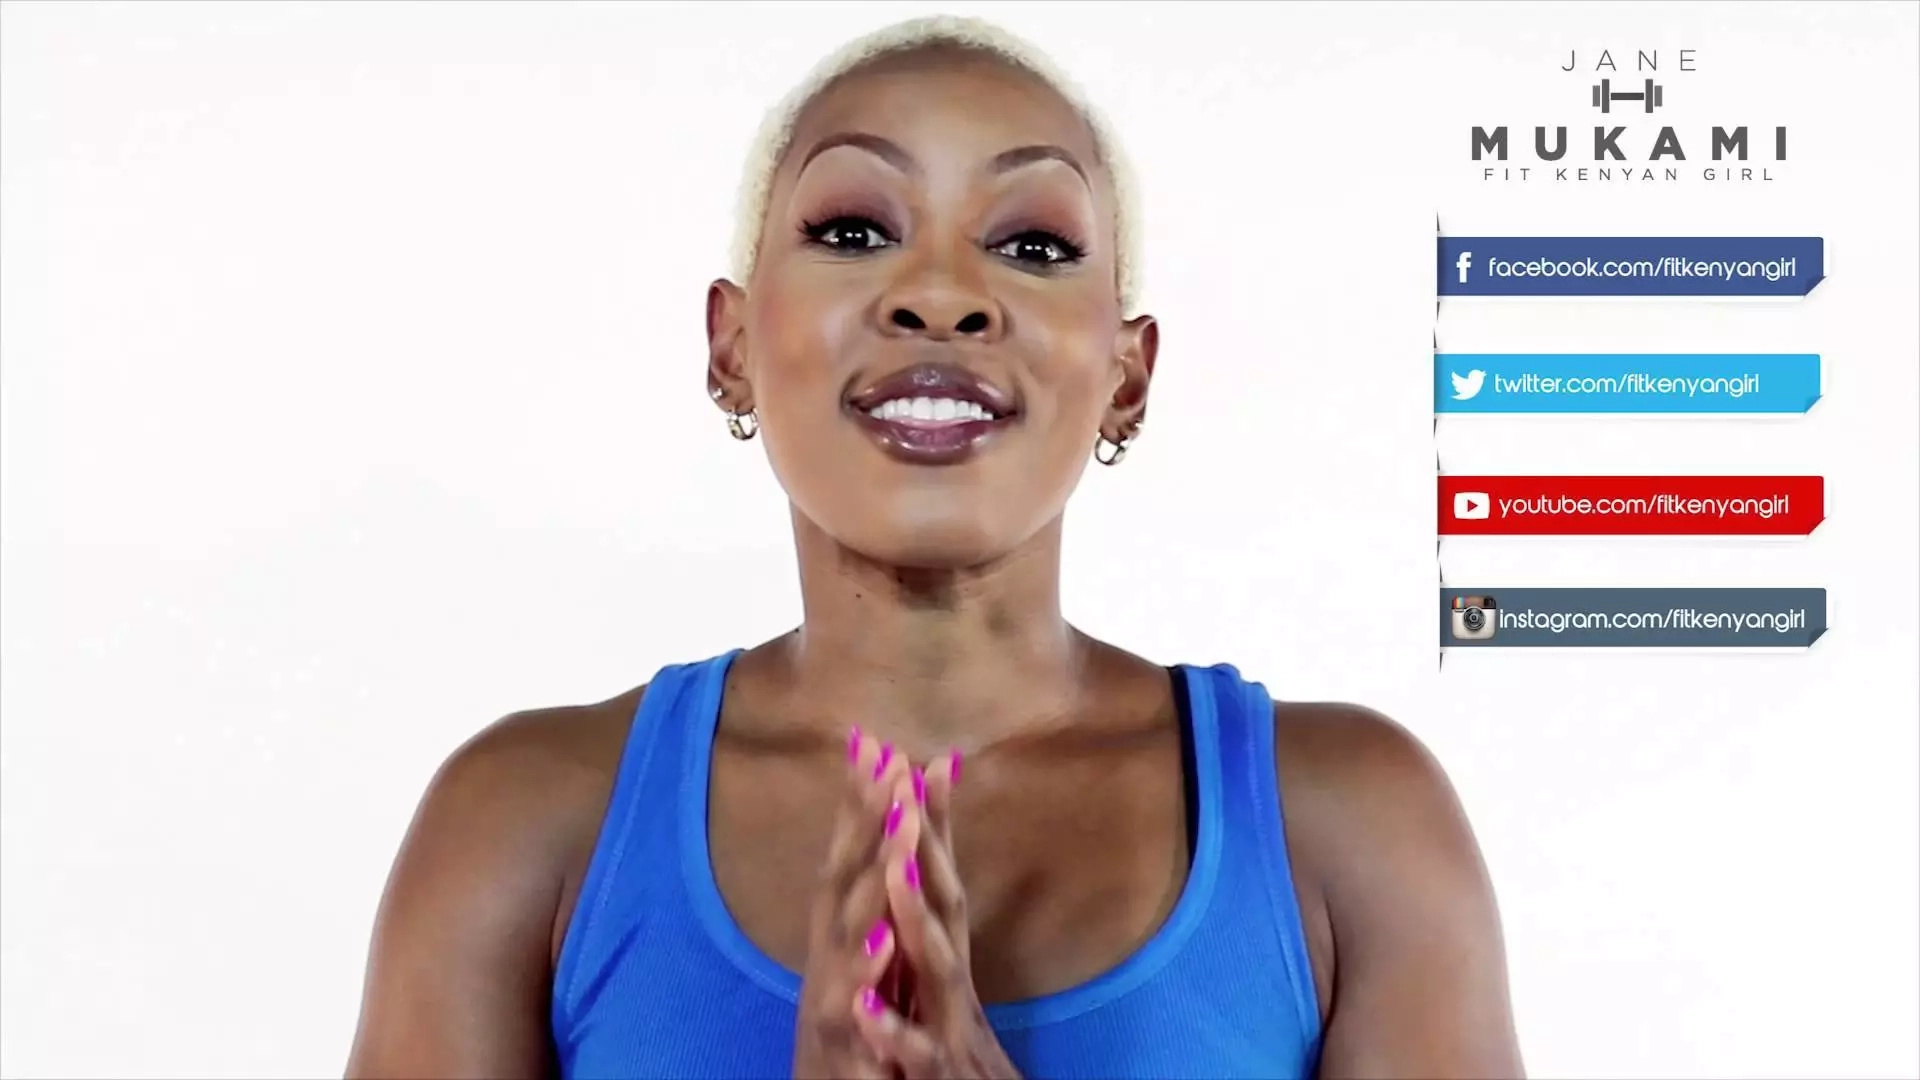 Jane Mukami 21 Day Challenge Benefits: Ho to Get the Ideal Body Weight